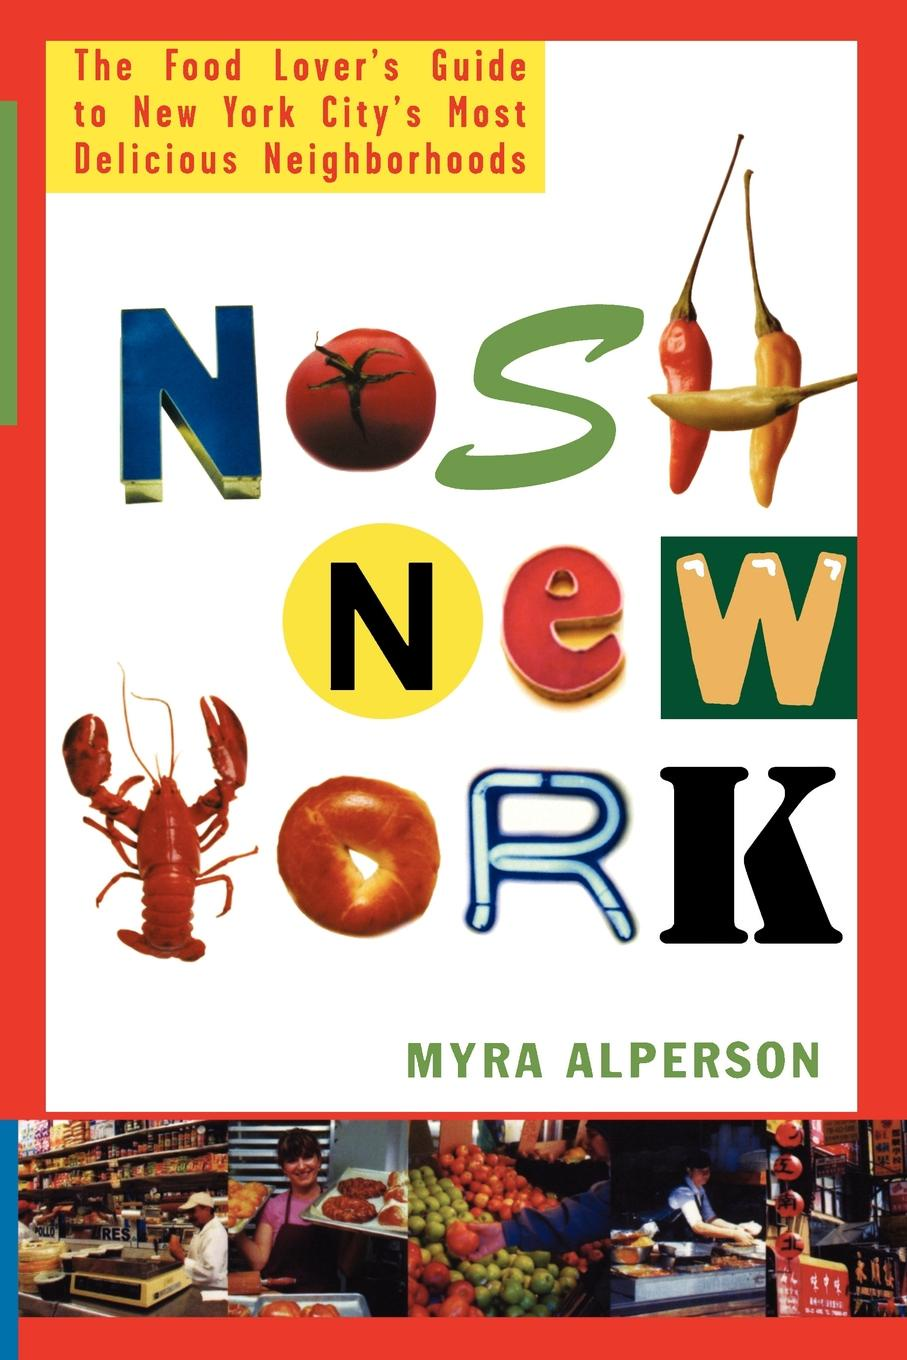 Myra Alperson Nosh New York. The Food Lover's Guide to New York City's Most Delicious Neighborhoods